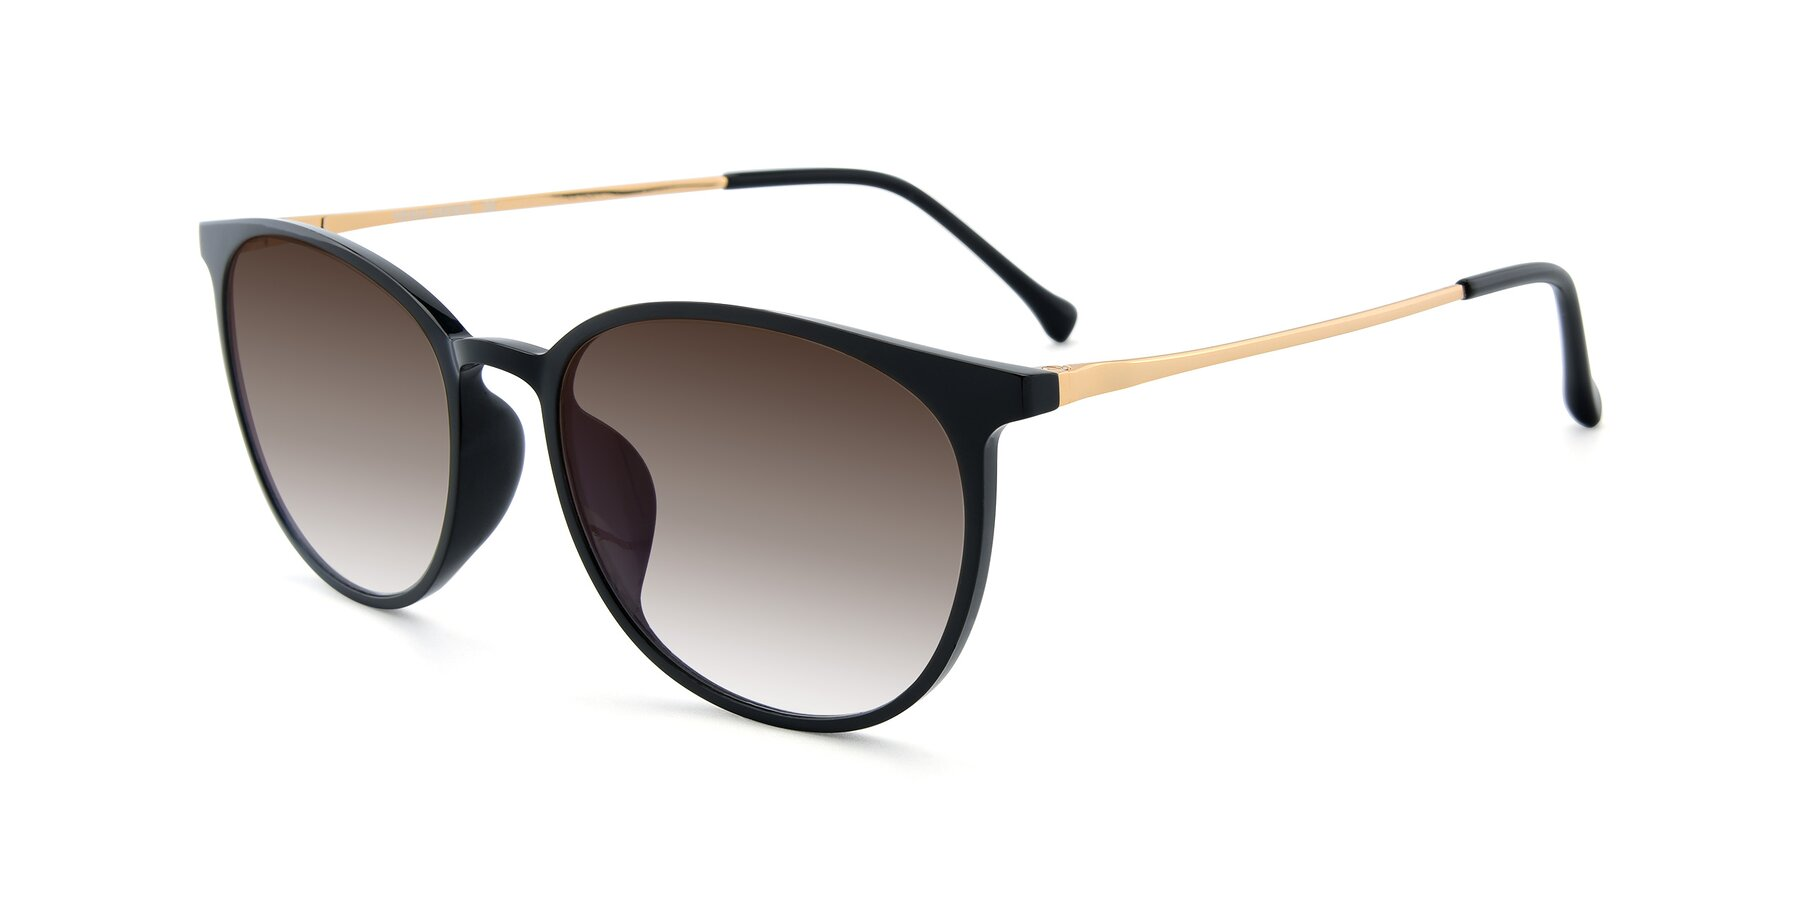 Angle of XC-6006 in Black-Gold with Brown Gradient Lenses